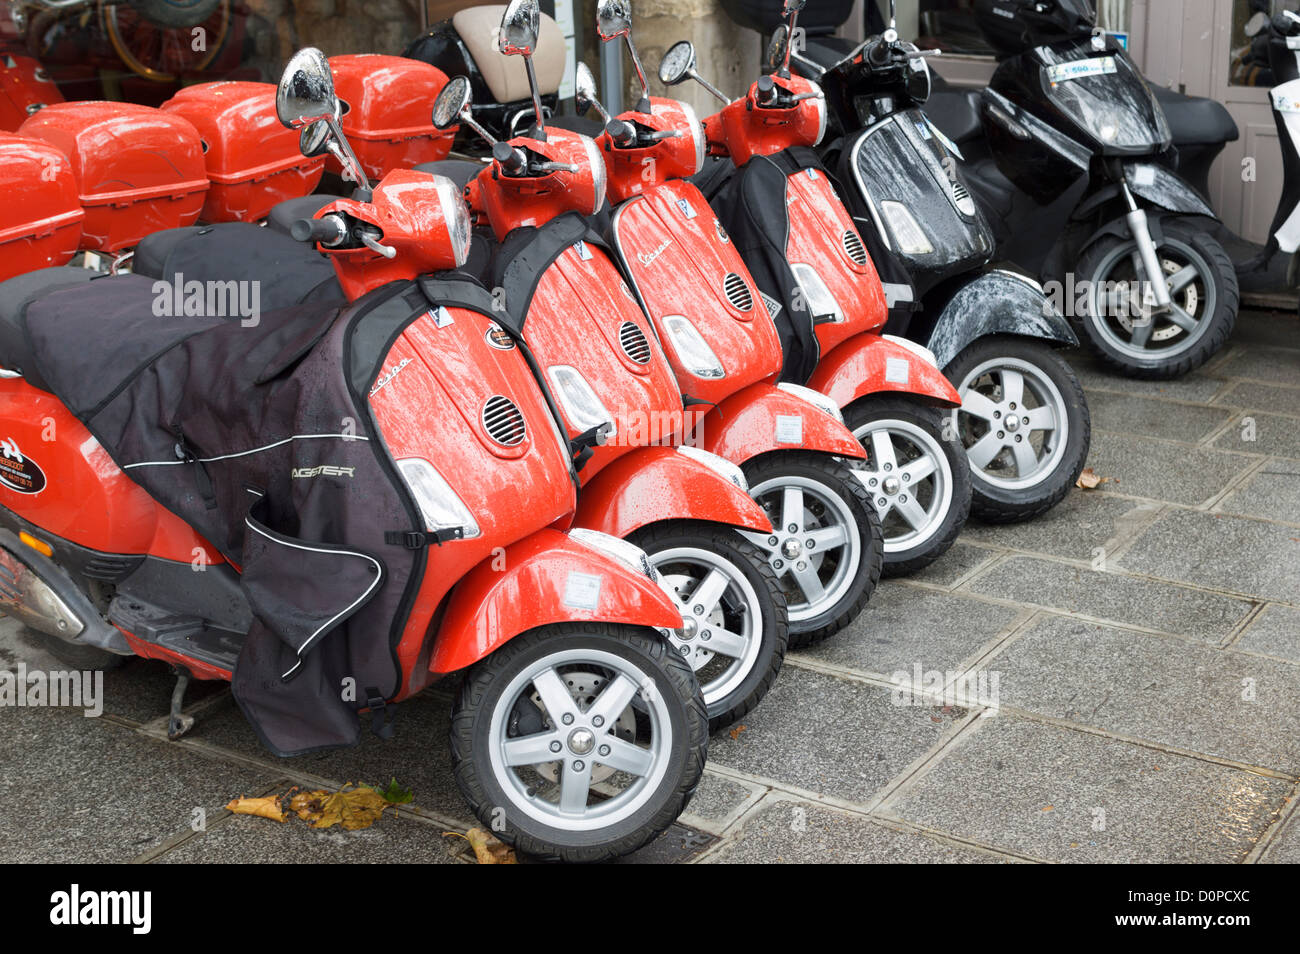 paris france red piaggio vespa motor scooters for hire parked in stock photo royalty free. Black Bedroom Furniture Sets. Home Design Ideas